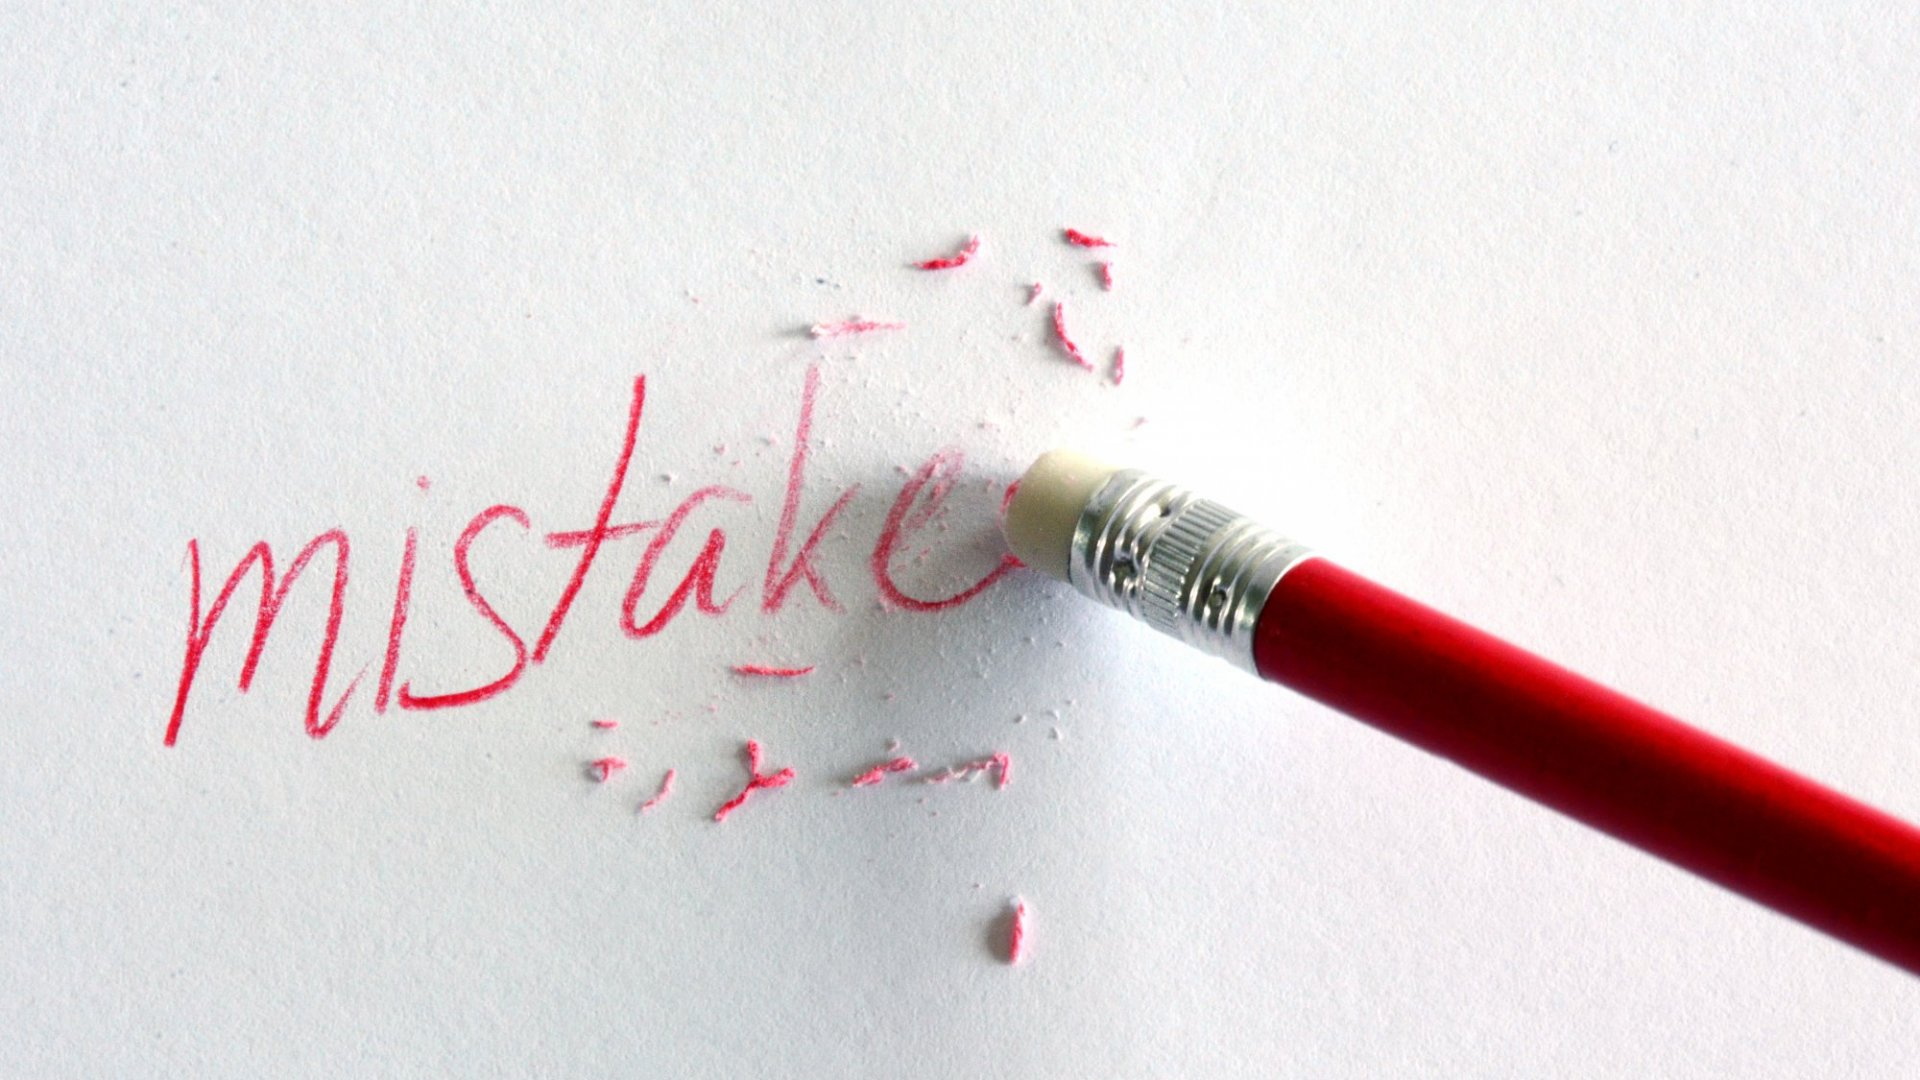 How to Avoid the 3 Most Common Startup Mistakes - Advice From Successful Founders